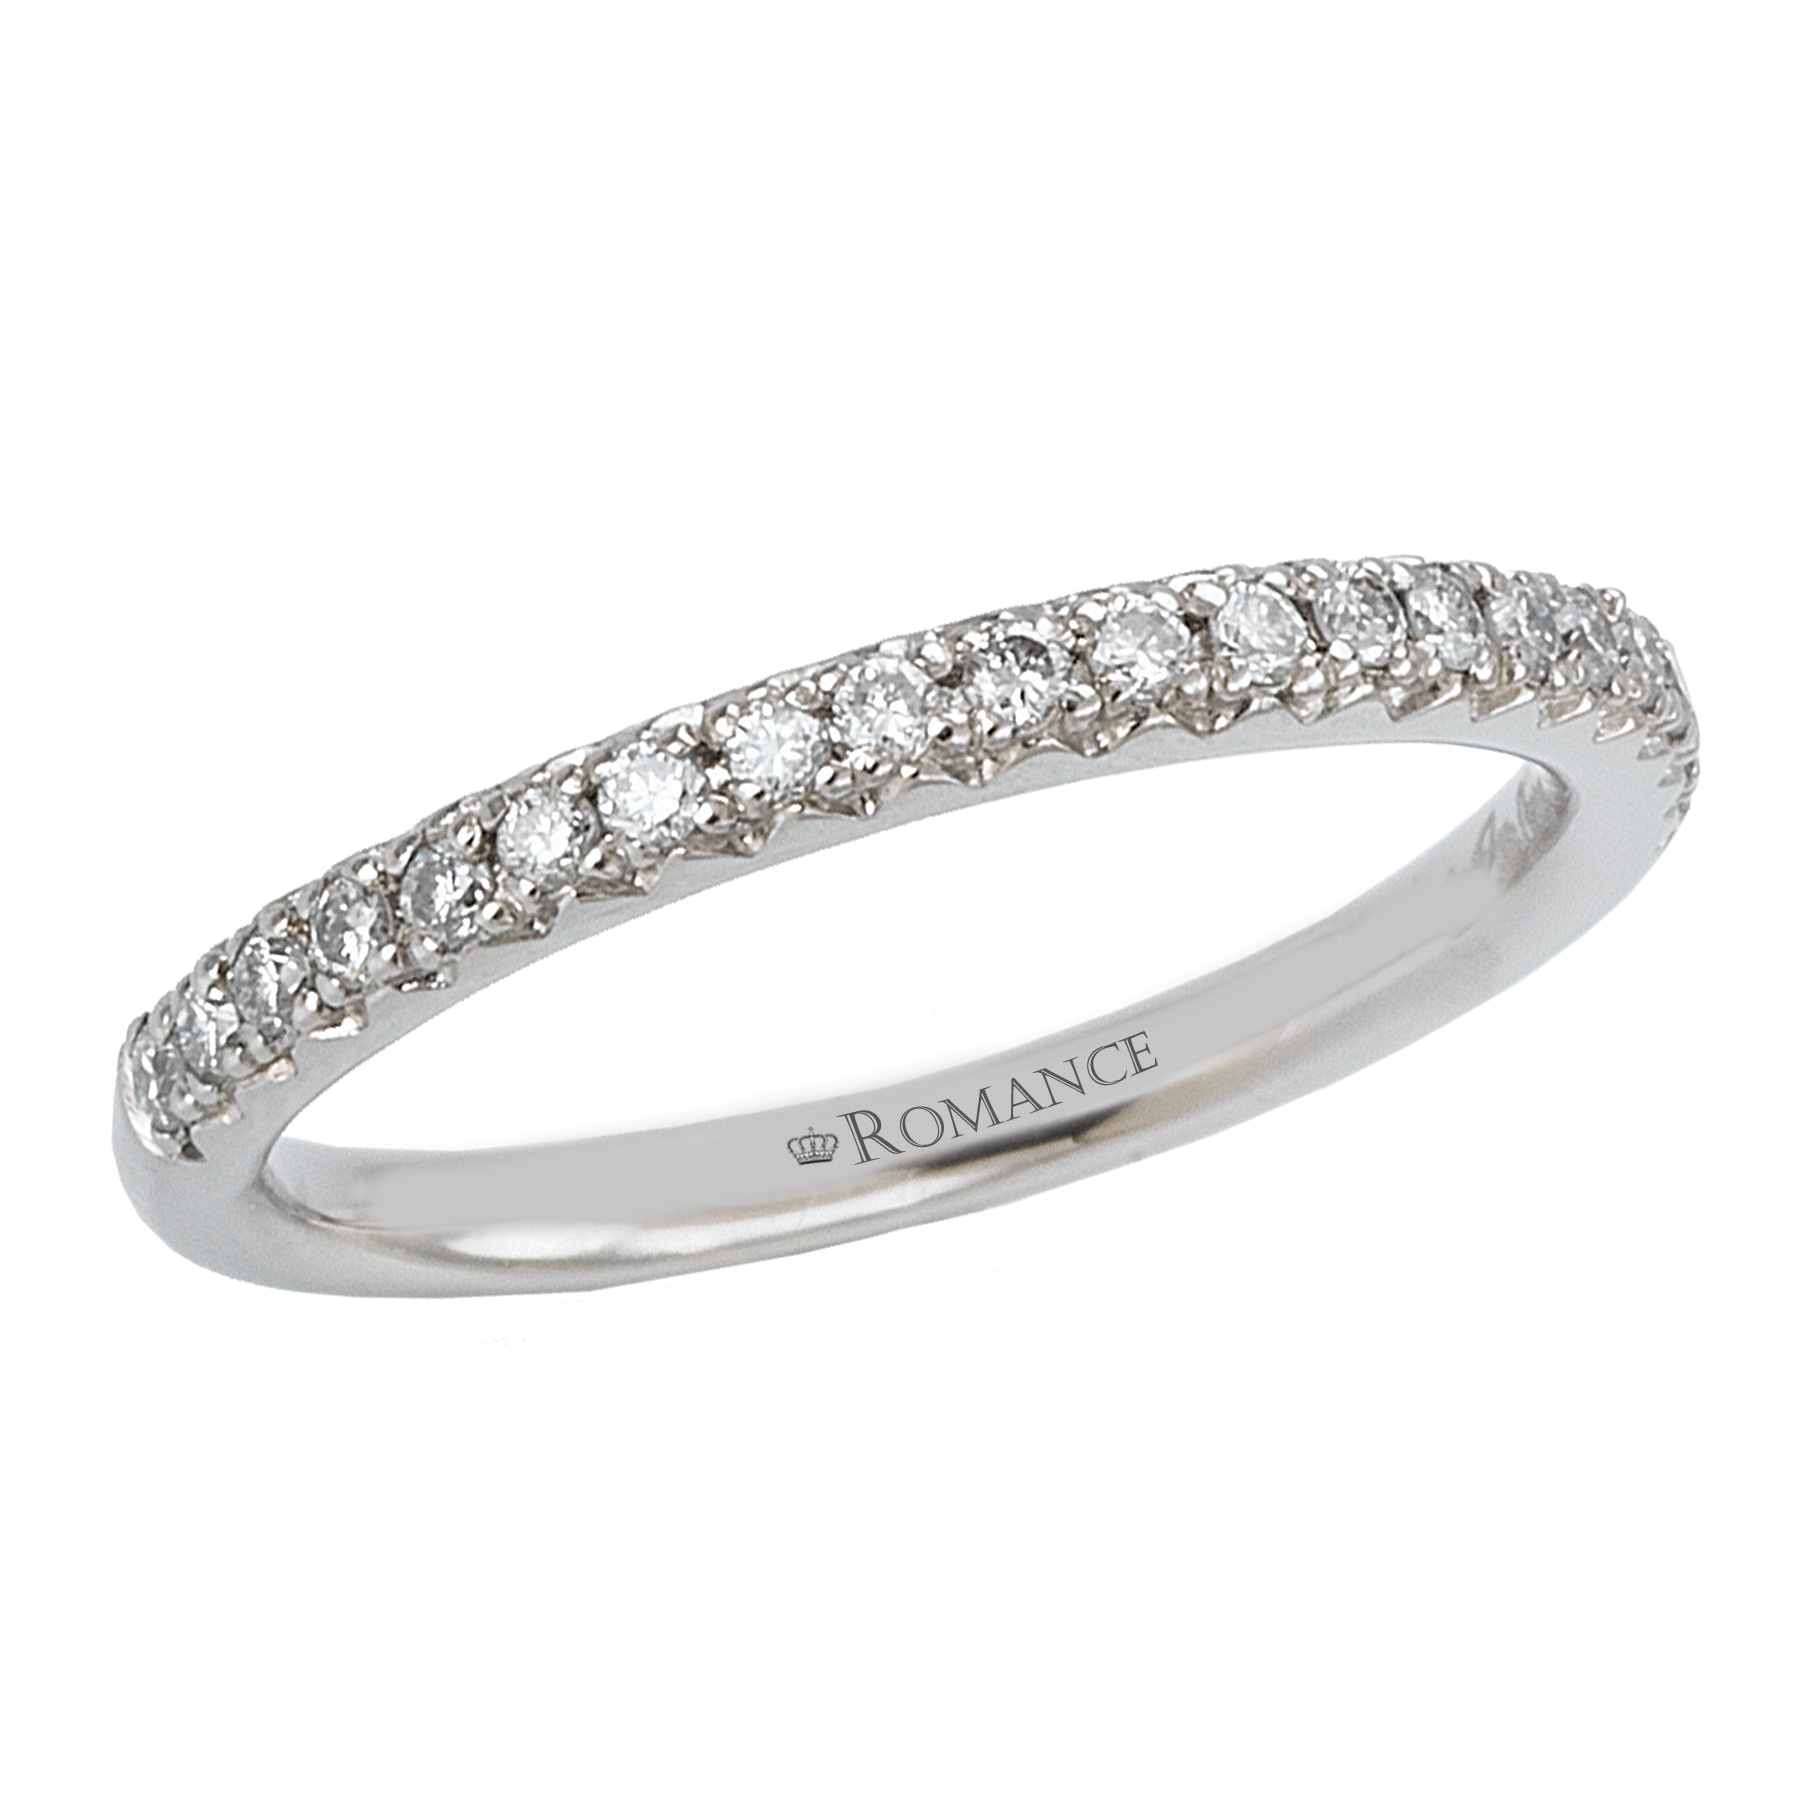 Romance Wedding Bands 118002-W product image